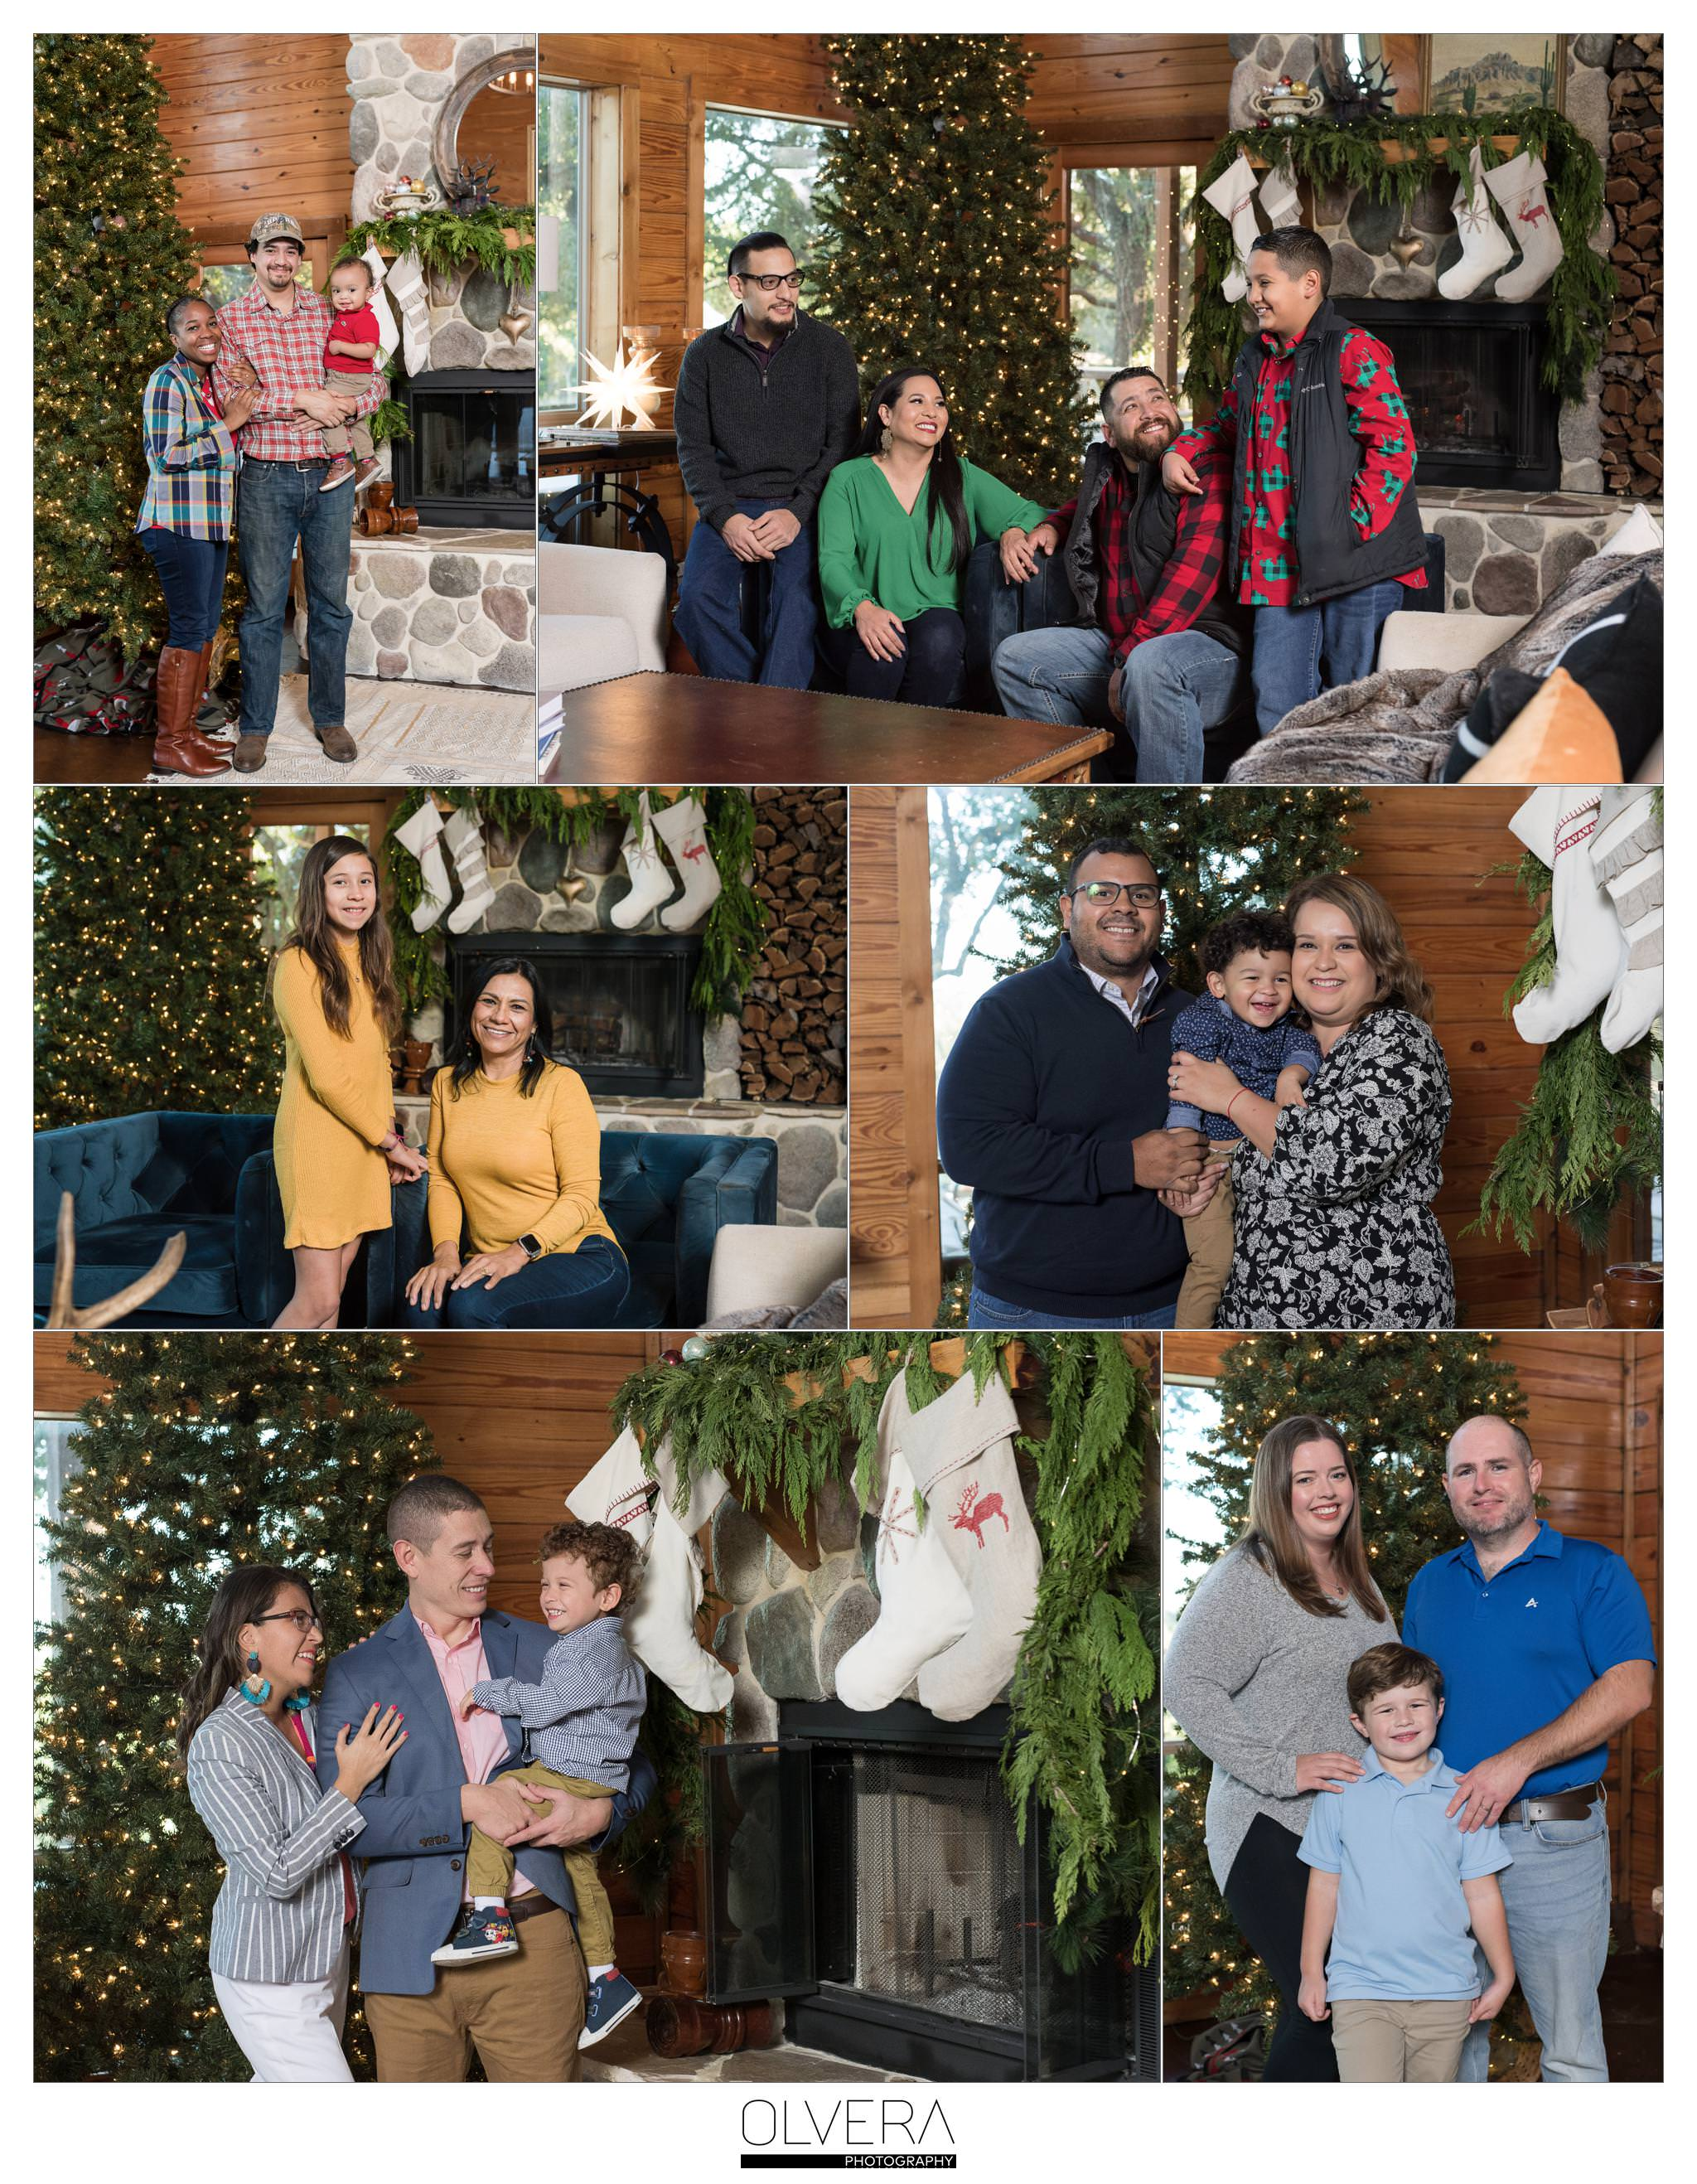 San-Antonio-Mini-Sessions_Christmas-Cabin-Tent_Olvera-Photography-2